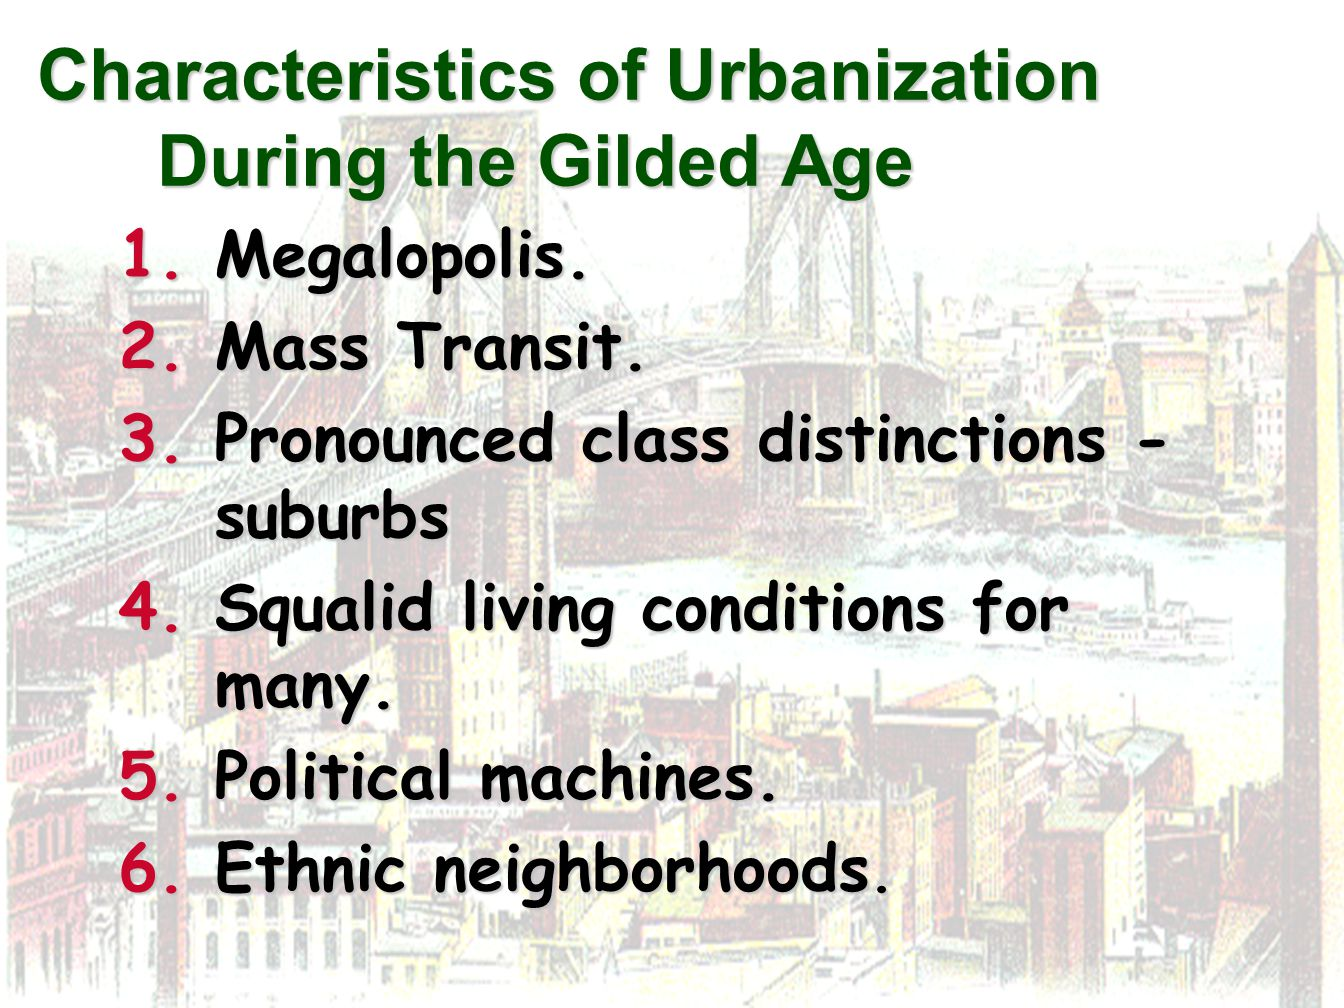 Characteristics of Urbanization During the Gilded Age 1.Megalopolis. 2.Mass Transit. 3.Pronounced class distinctions - suburbs 4.Squalid living condit